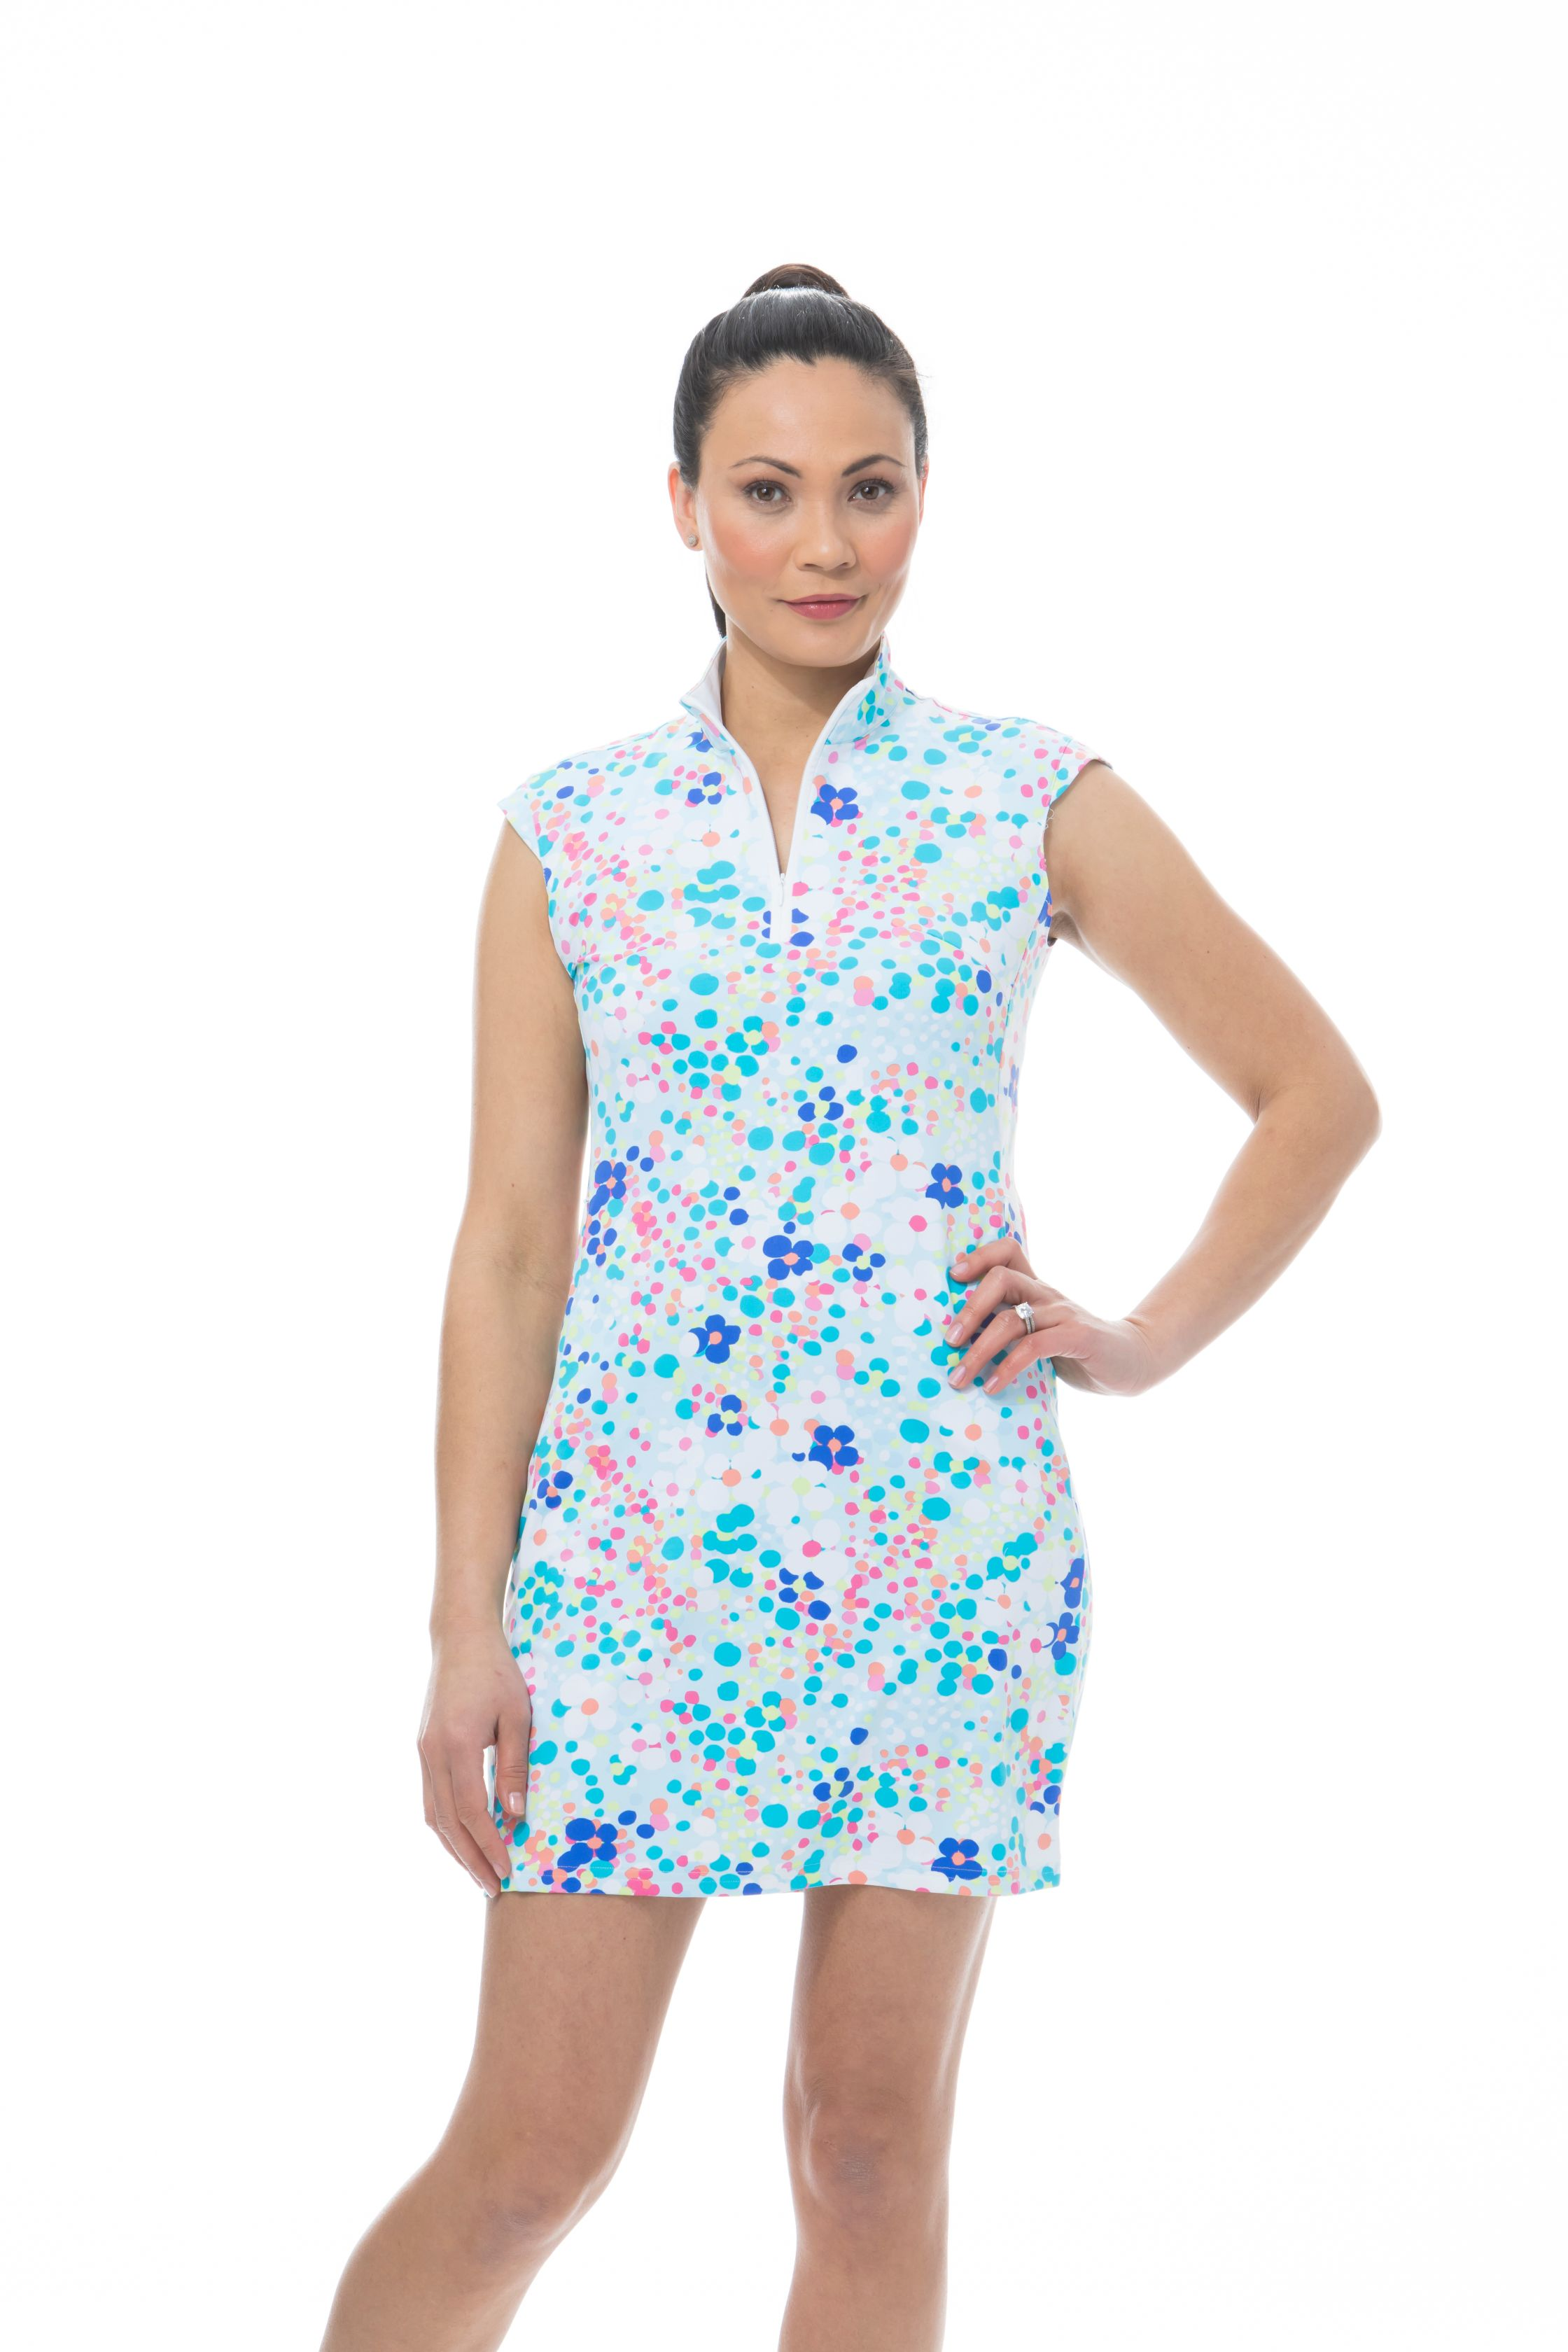 900722I. SanSoleil SolStyle ICE. Sleeveless Zip Mock Dress. Flower Power